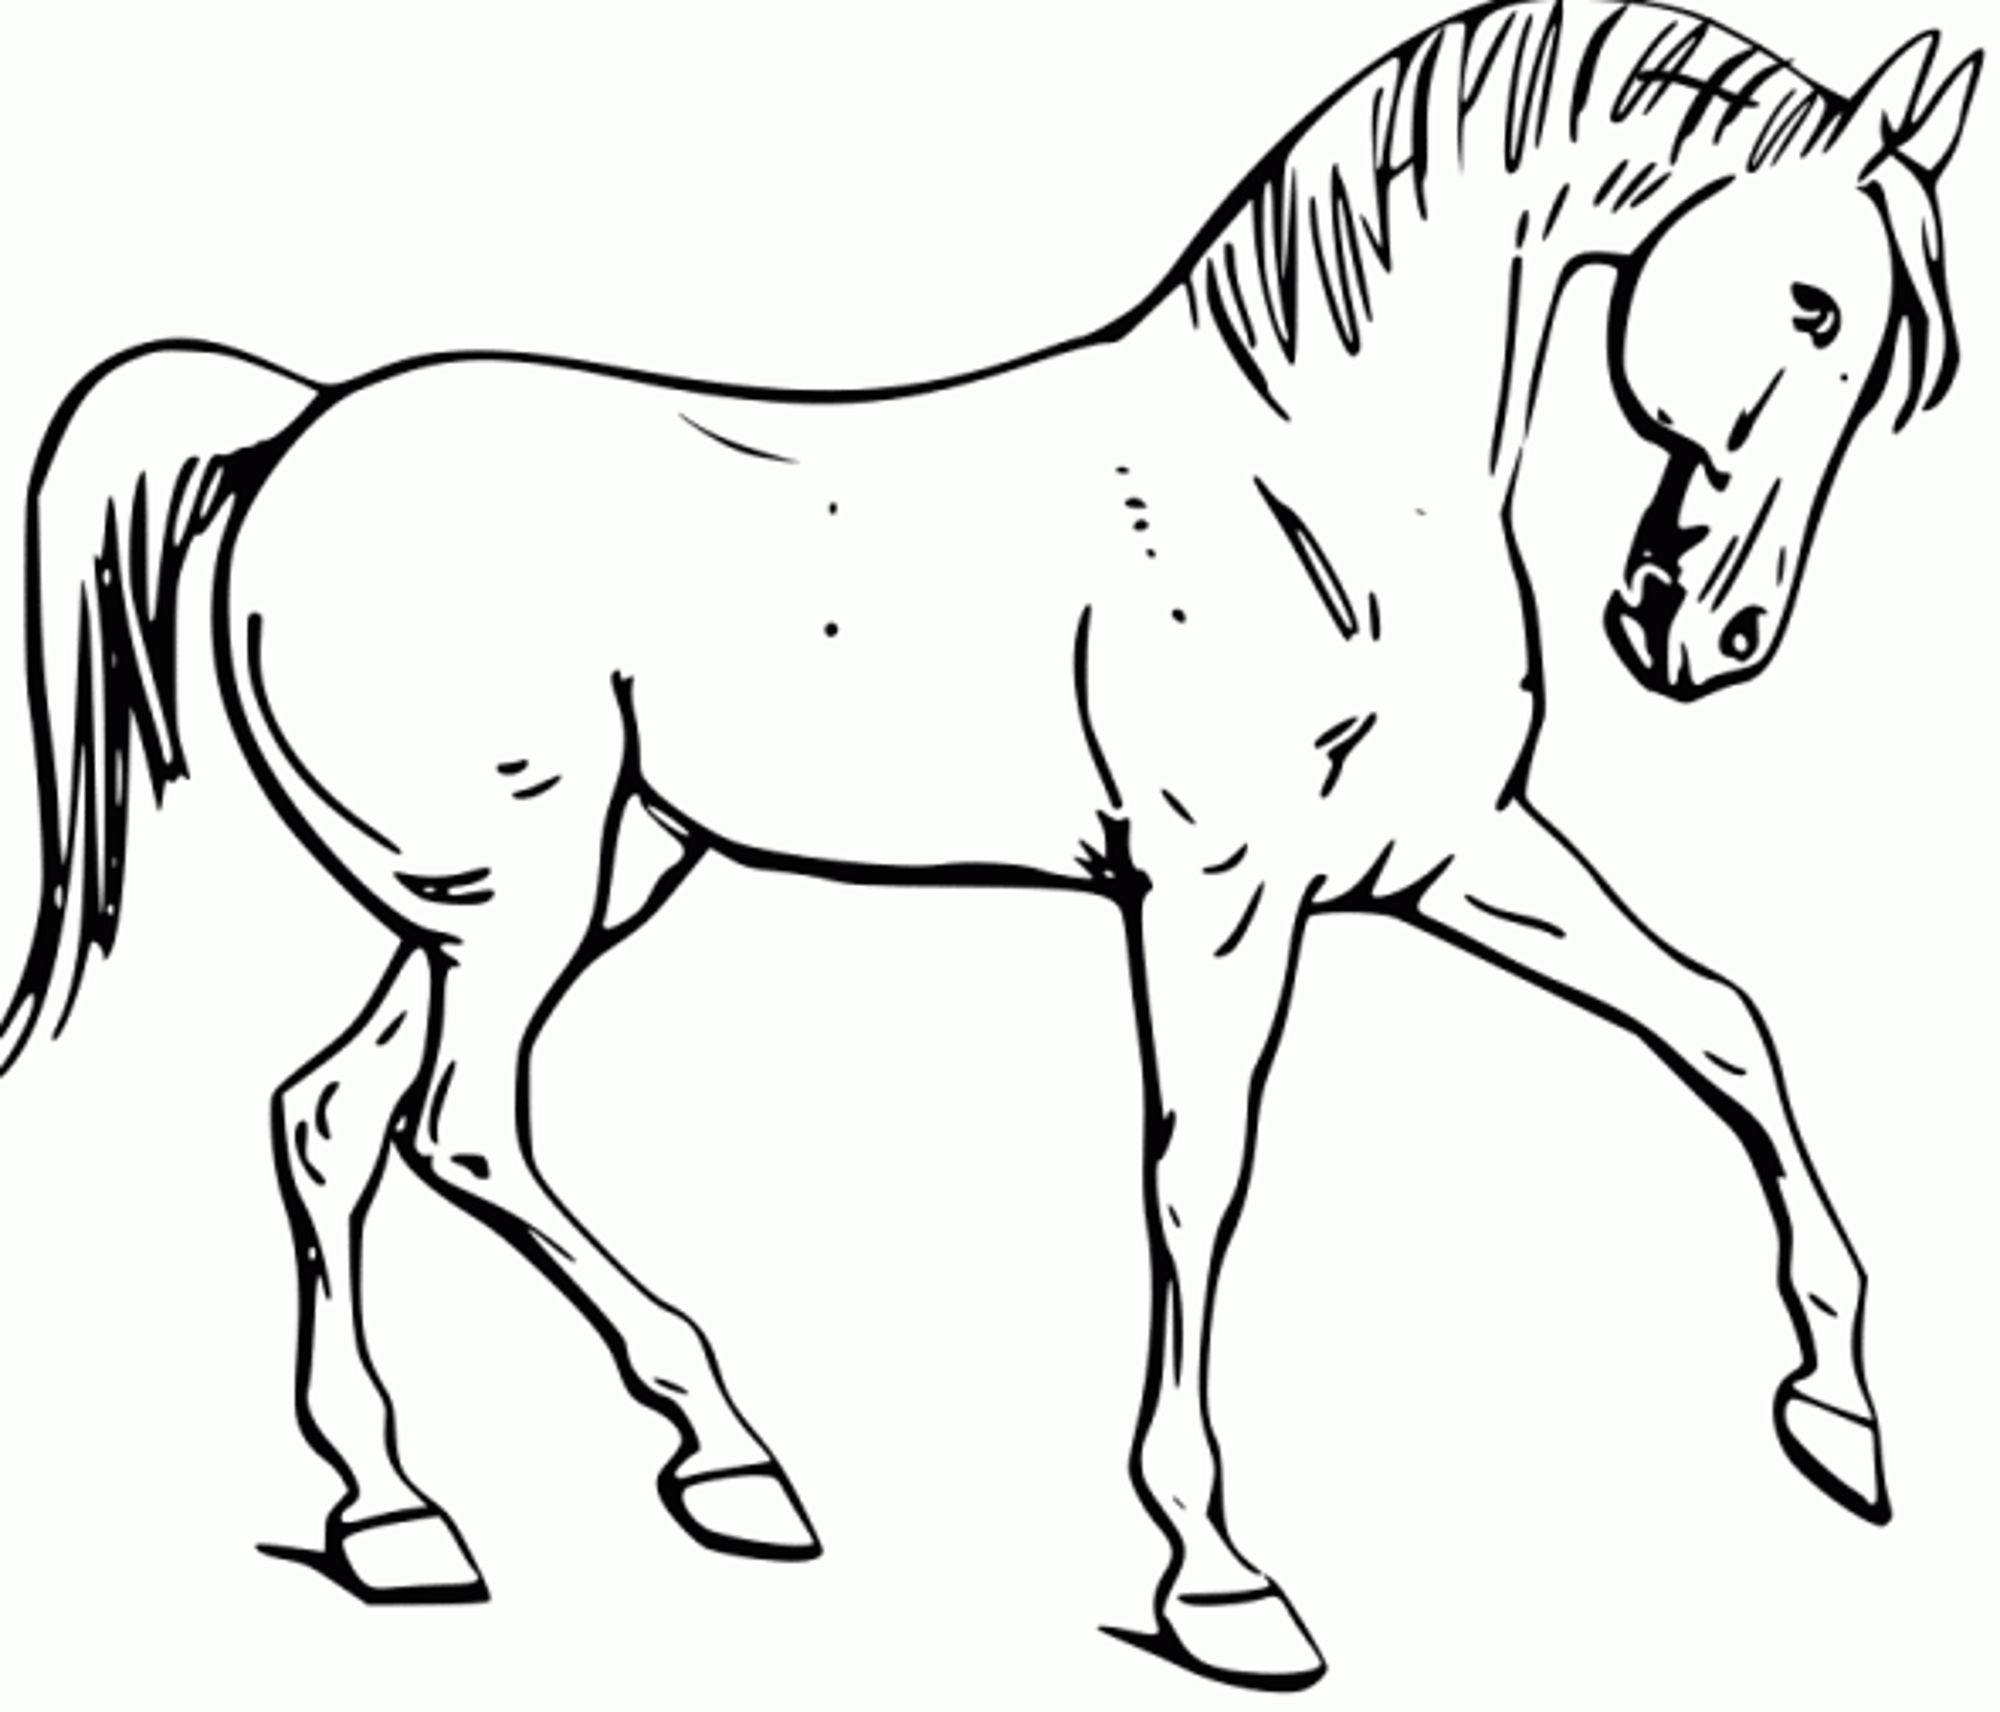 2000x1712 Fun Horse Coloring Pages For Your Kids Printable